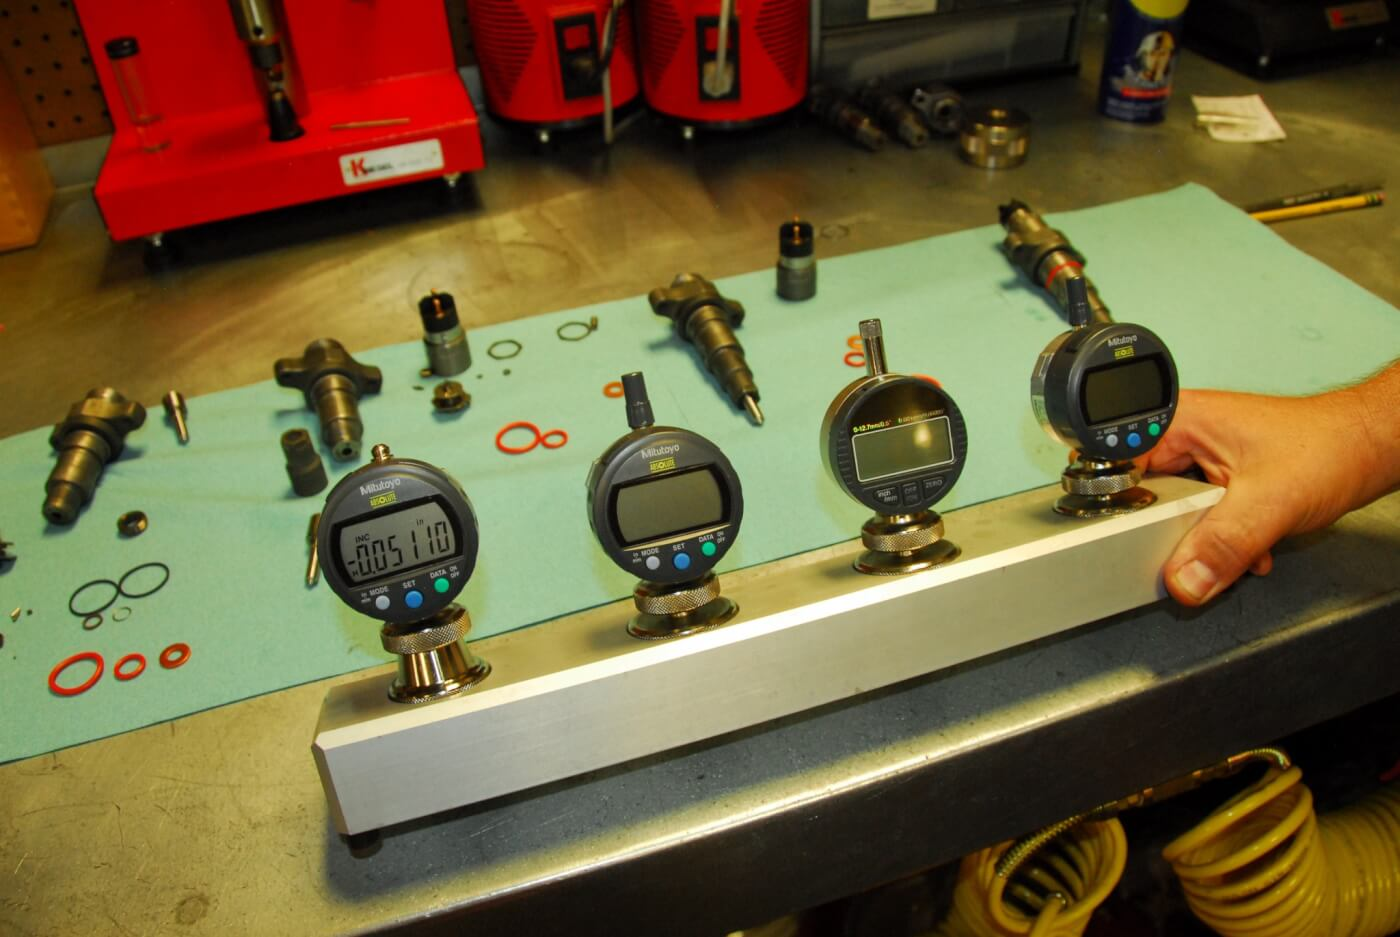 12. These four precision gauges are used for evaluating the air gap, and both the armature lift and nozzle lift of an injector.